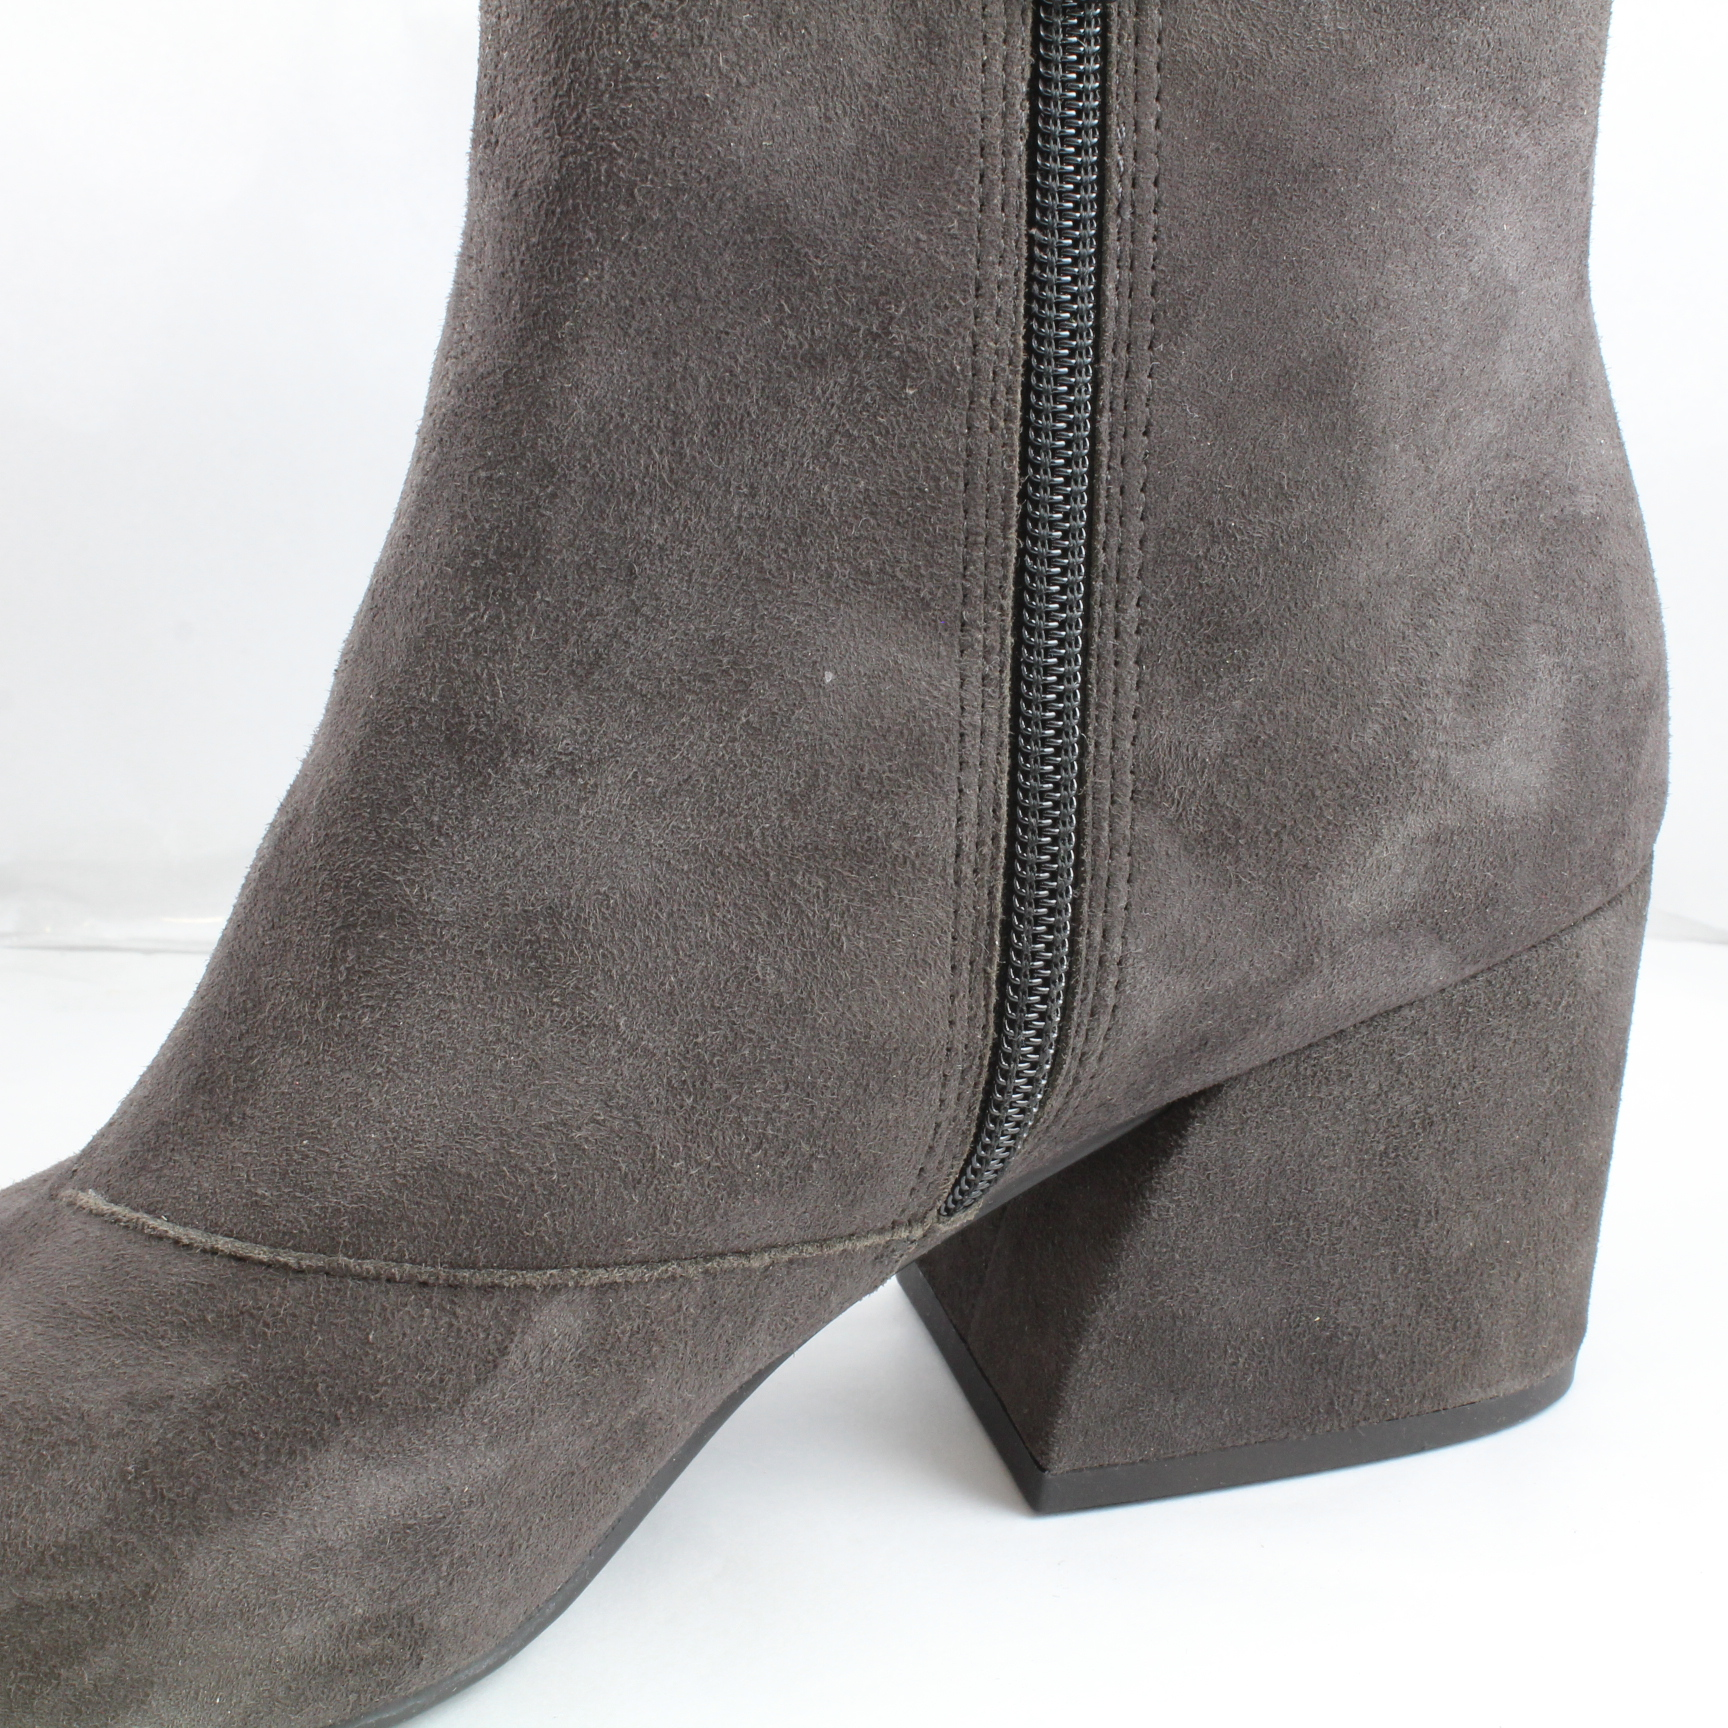 womens vagabond grey suede zip ankle boots uk size 6 ex